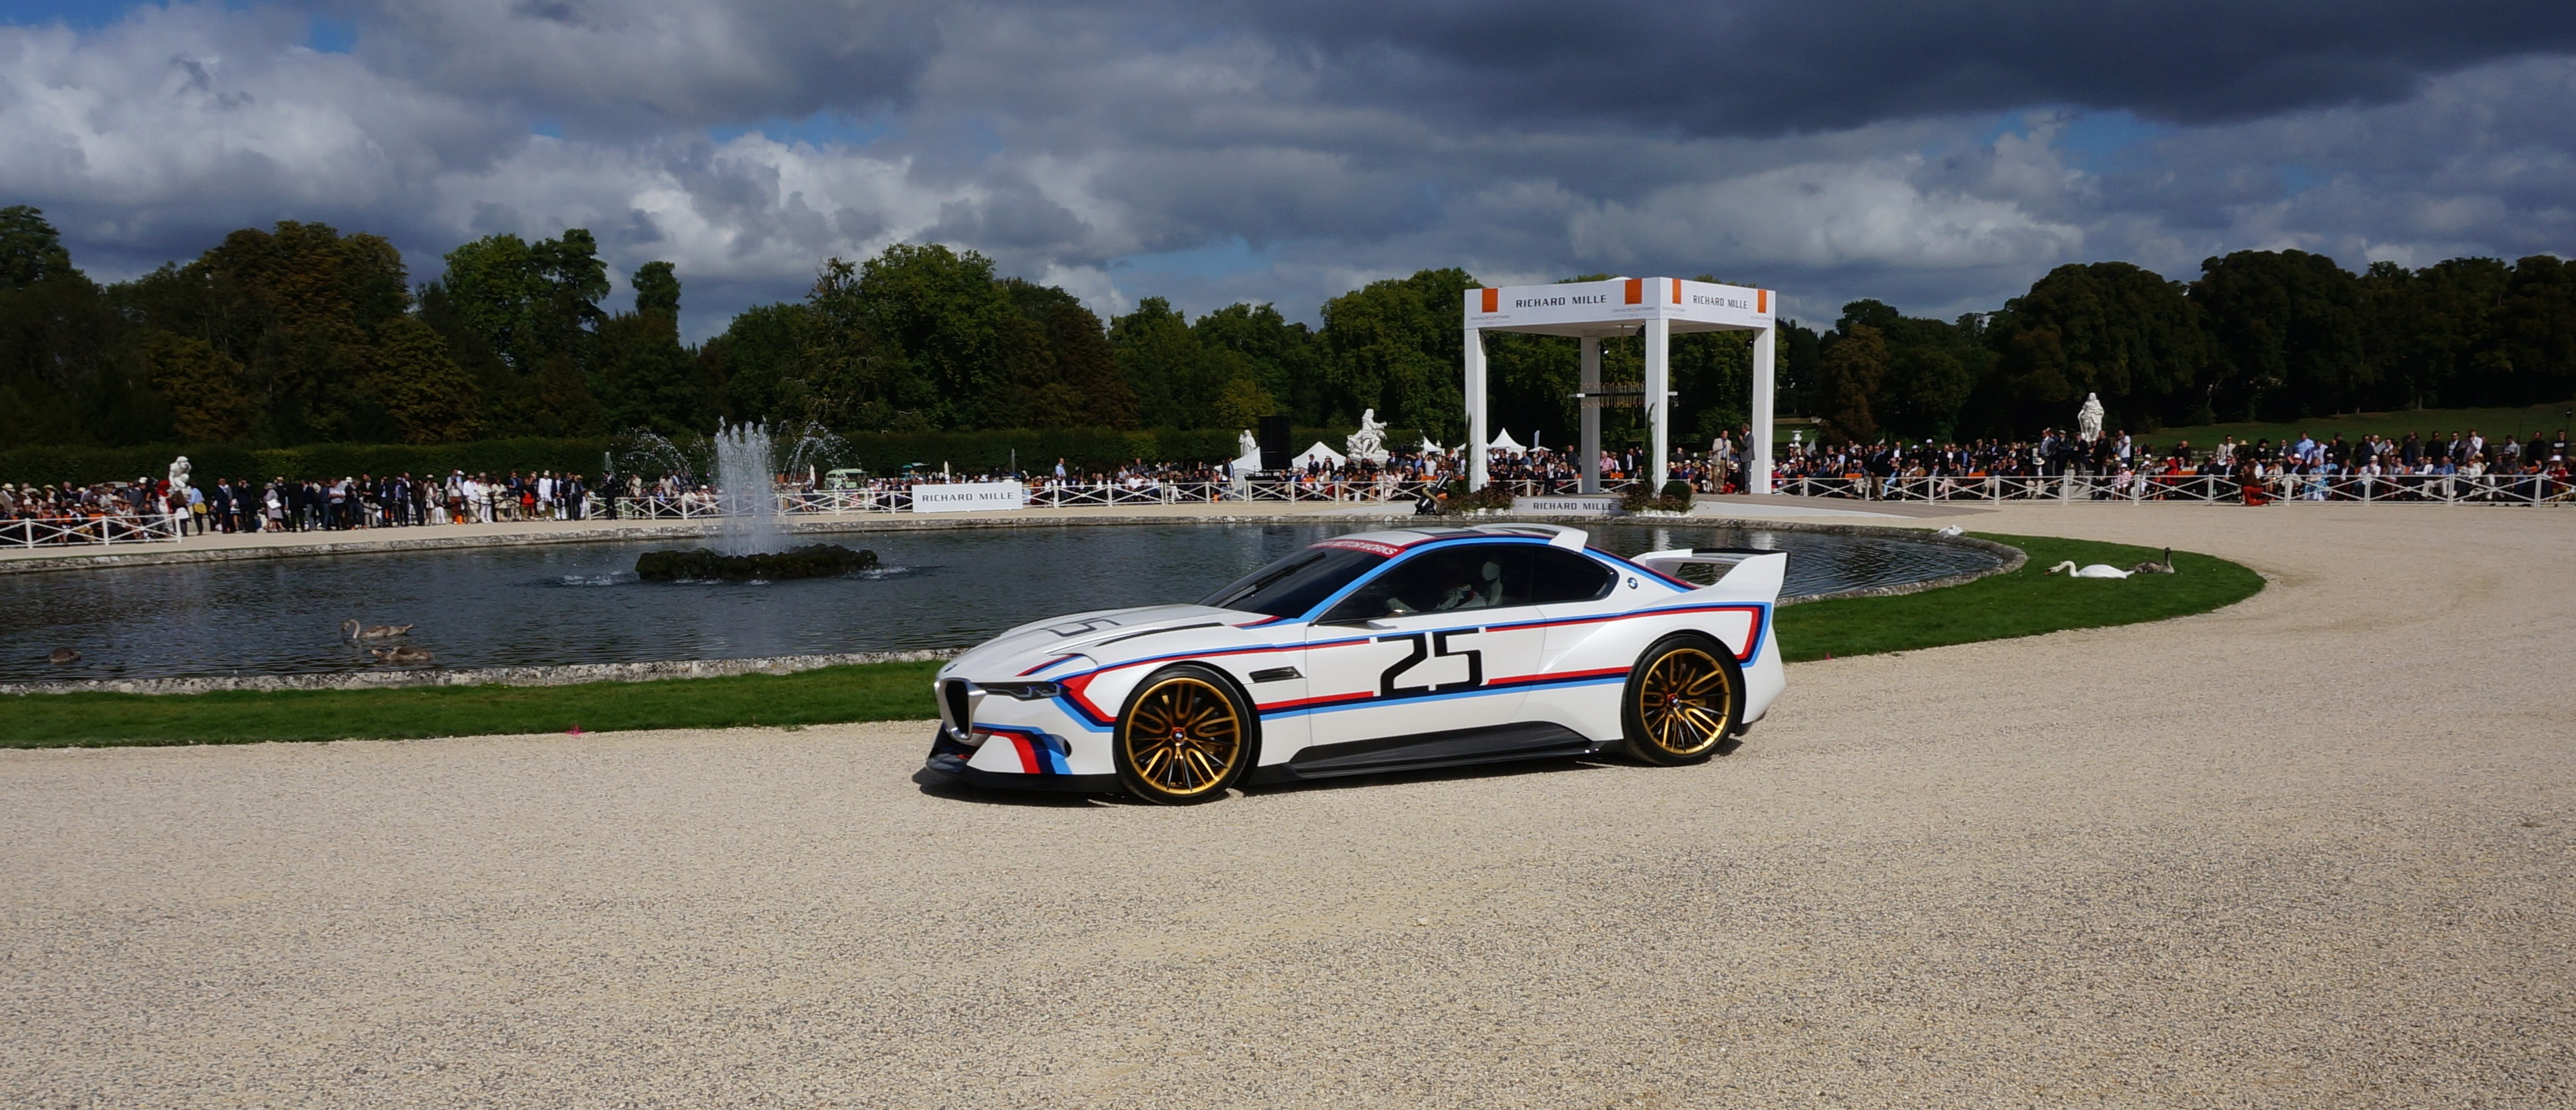 bmw csl hommage r chantilly richard mille arts et elegance 2015 1 en voiture carine. Black Bedroom Furniture Sets. Home Design Ideas